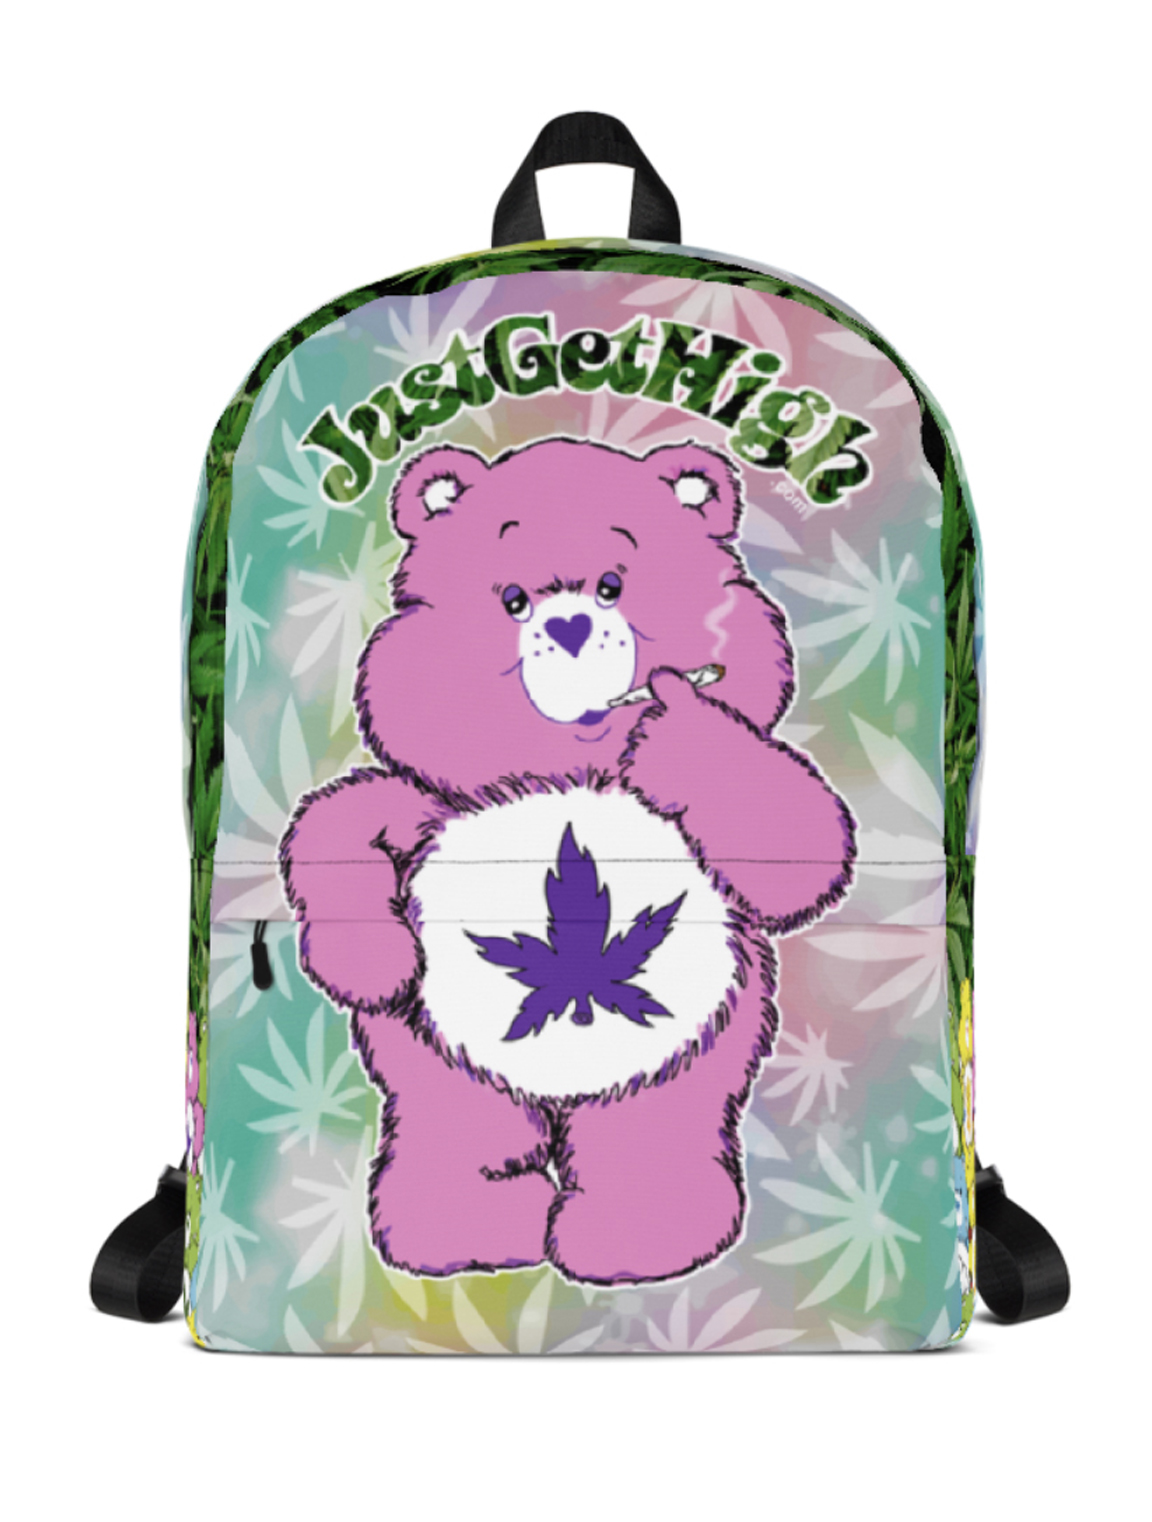 just get high_backpack_cannabear purps_front